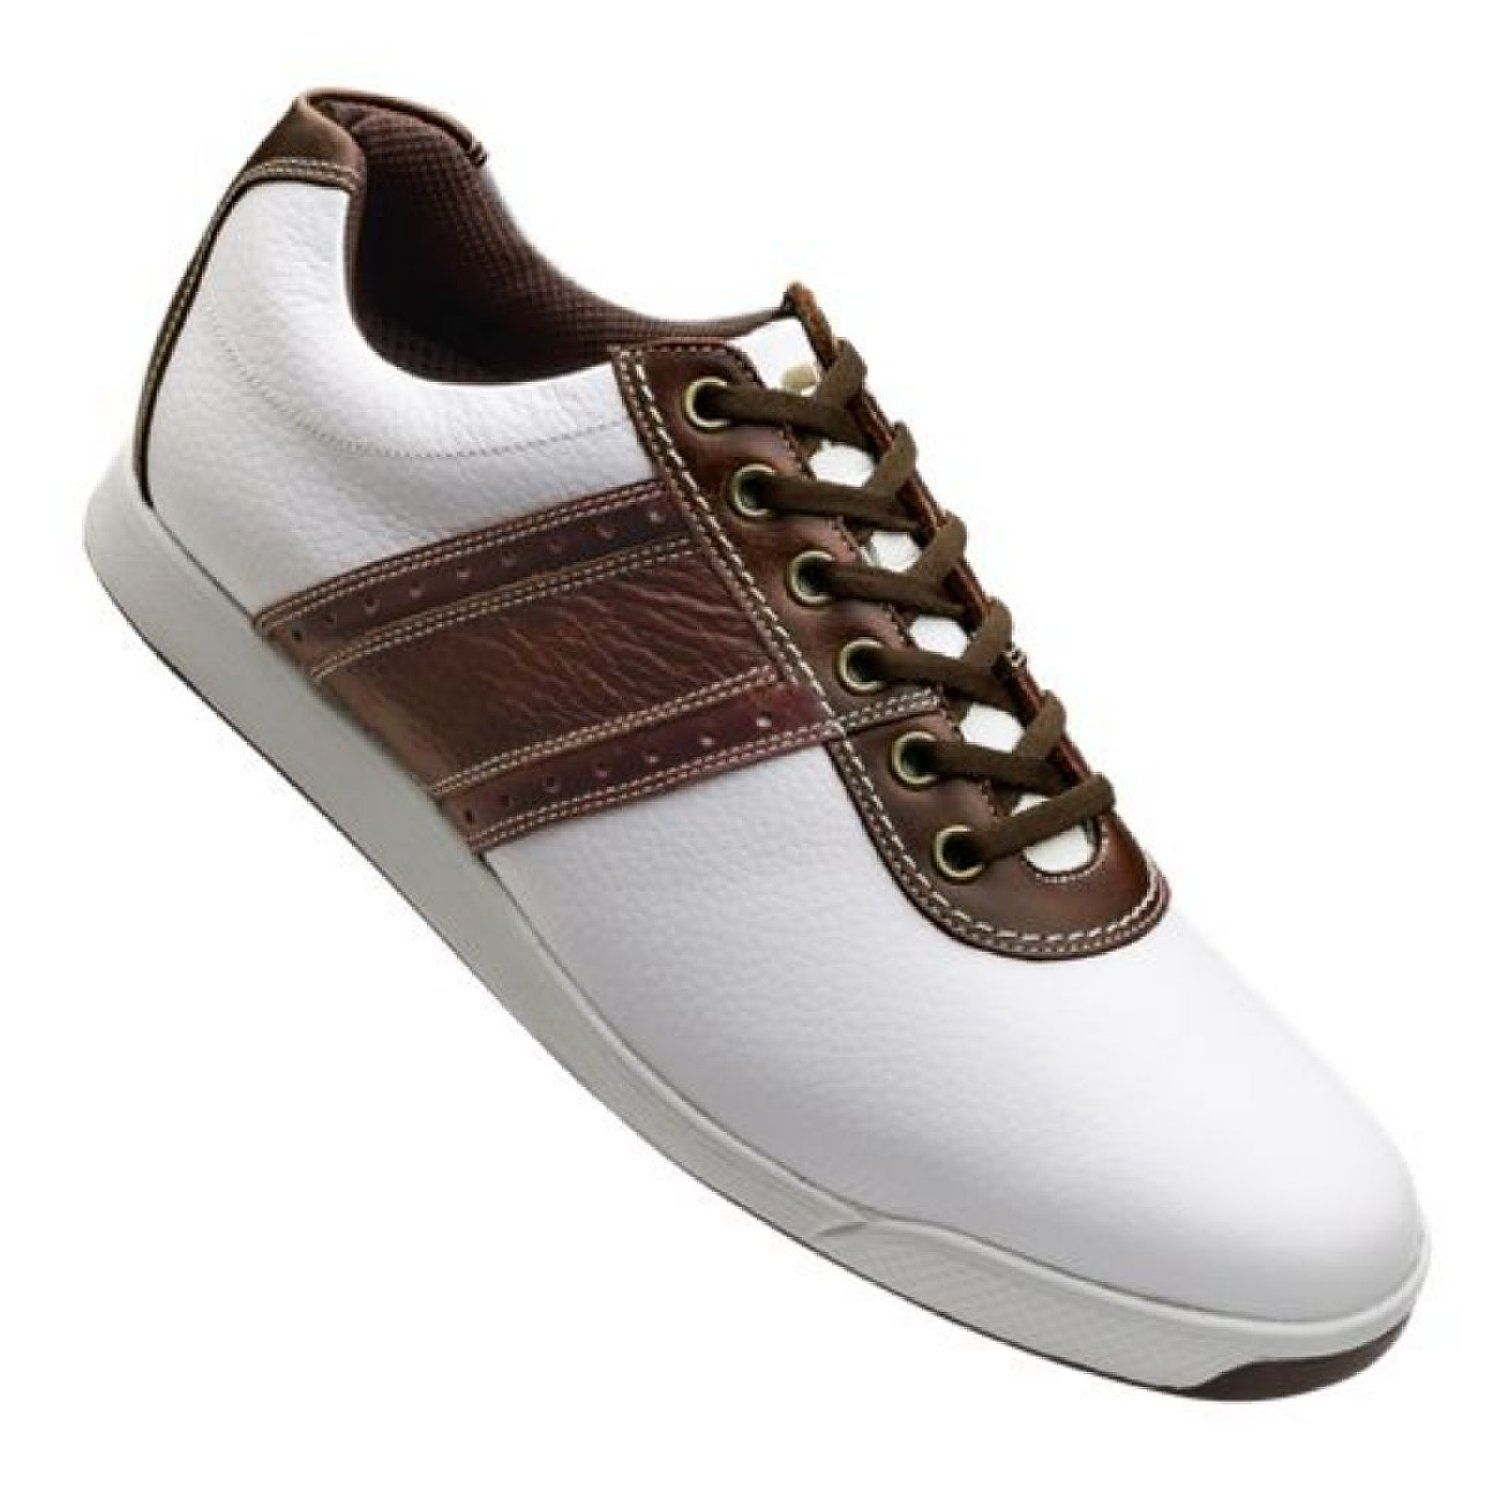 FootJoy, Contour Casual Spikeless Golf Shoes